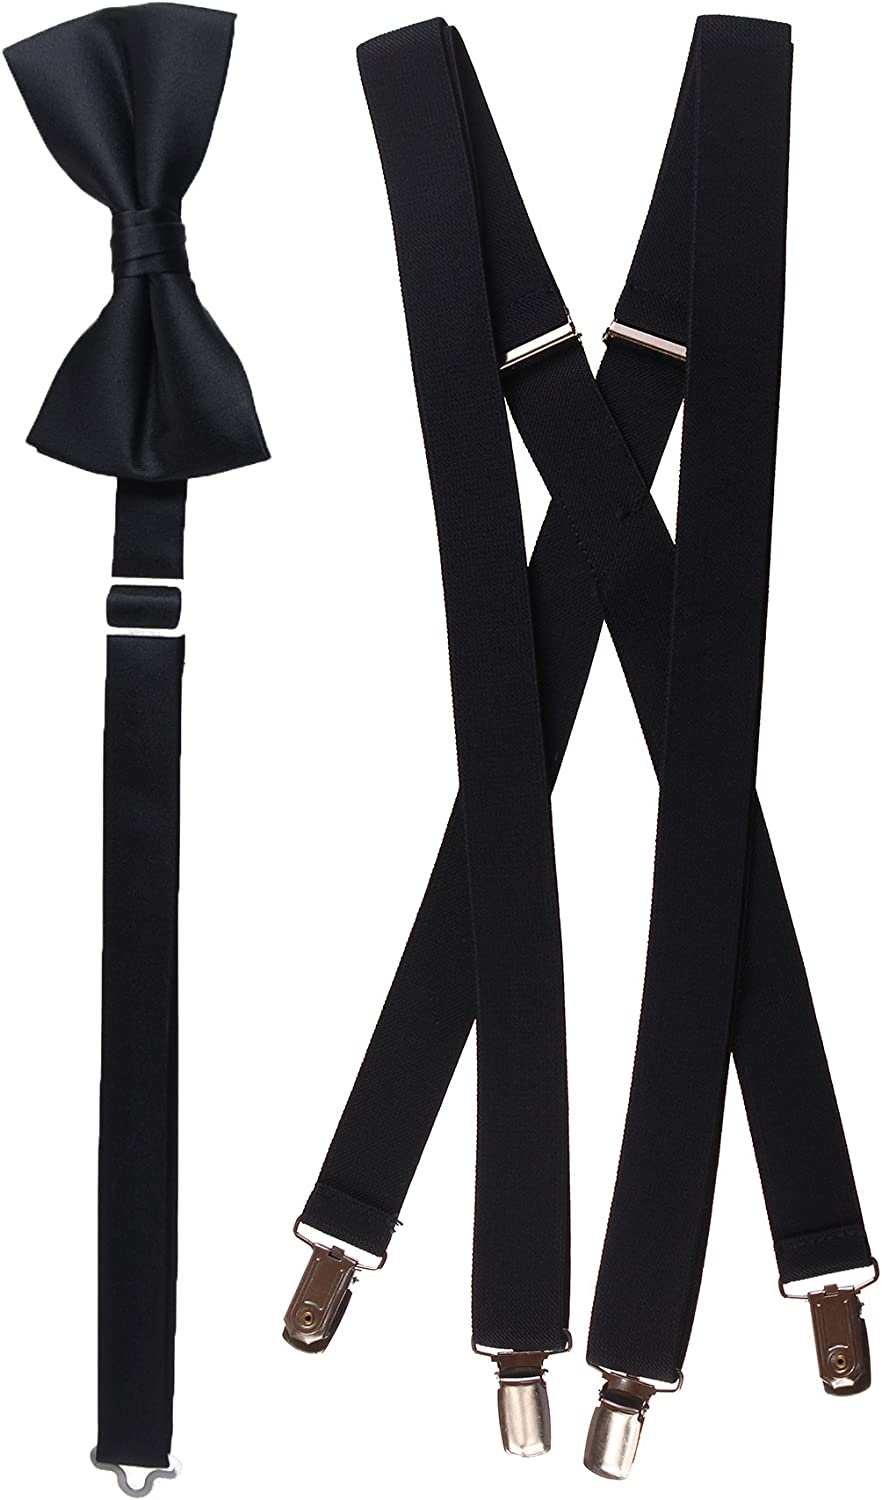 Tuxgear Mens Matching Black Adjustable Suspender and Bow Tie Sets, Kids to Adults Sizing